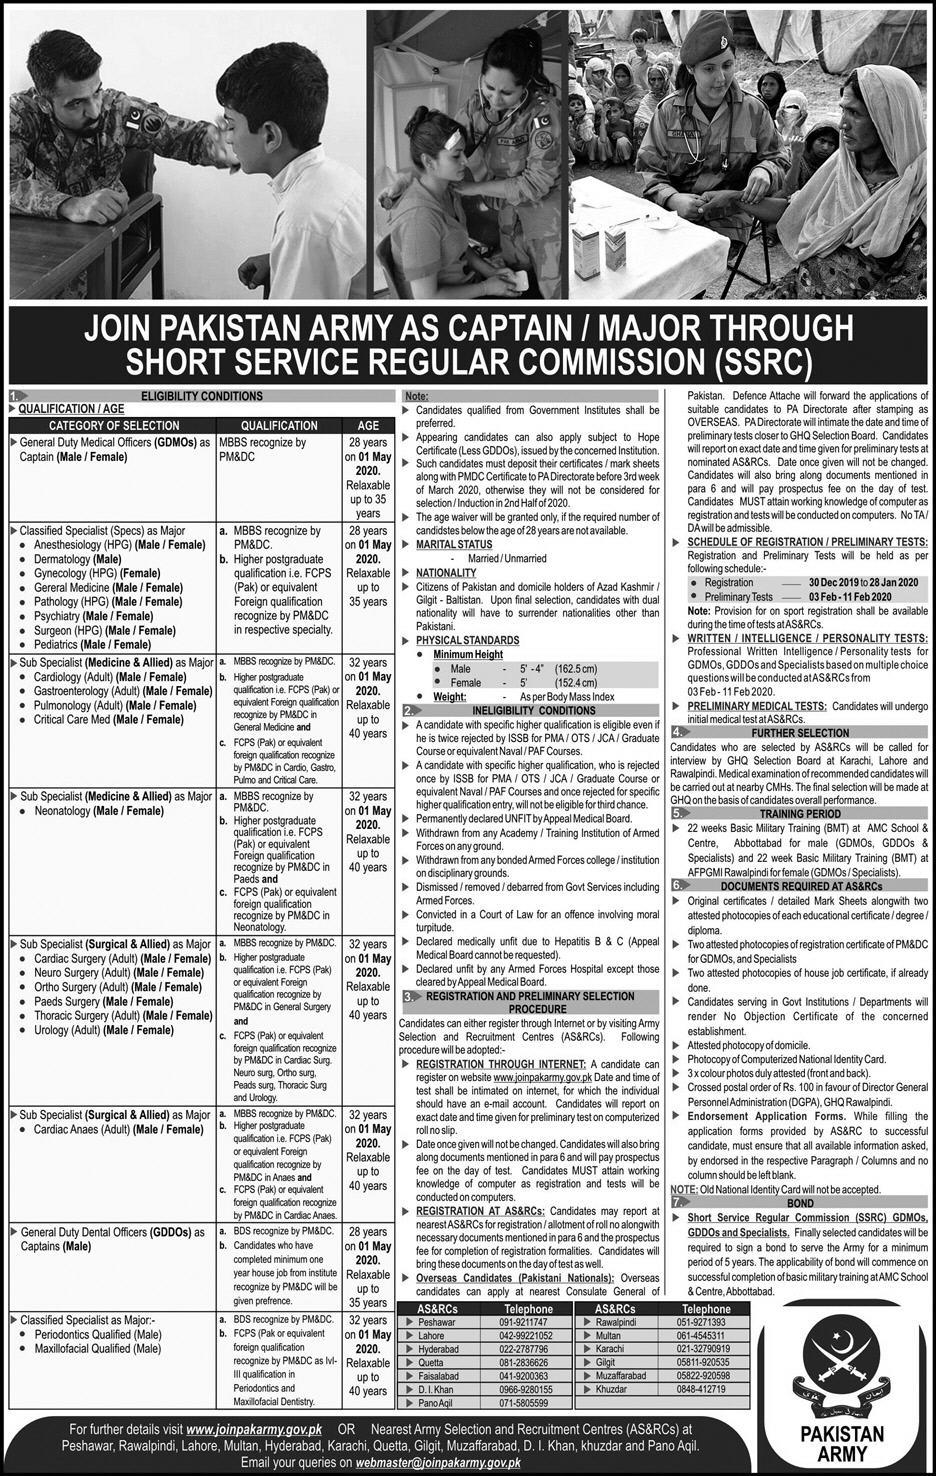 Join Pak Army as Major Captain